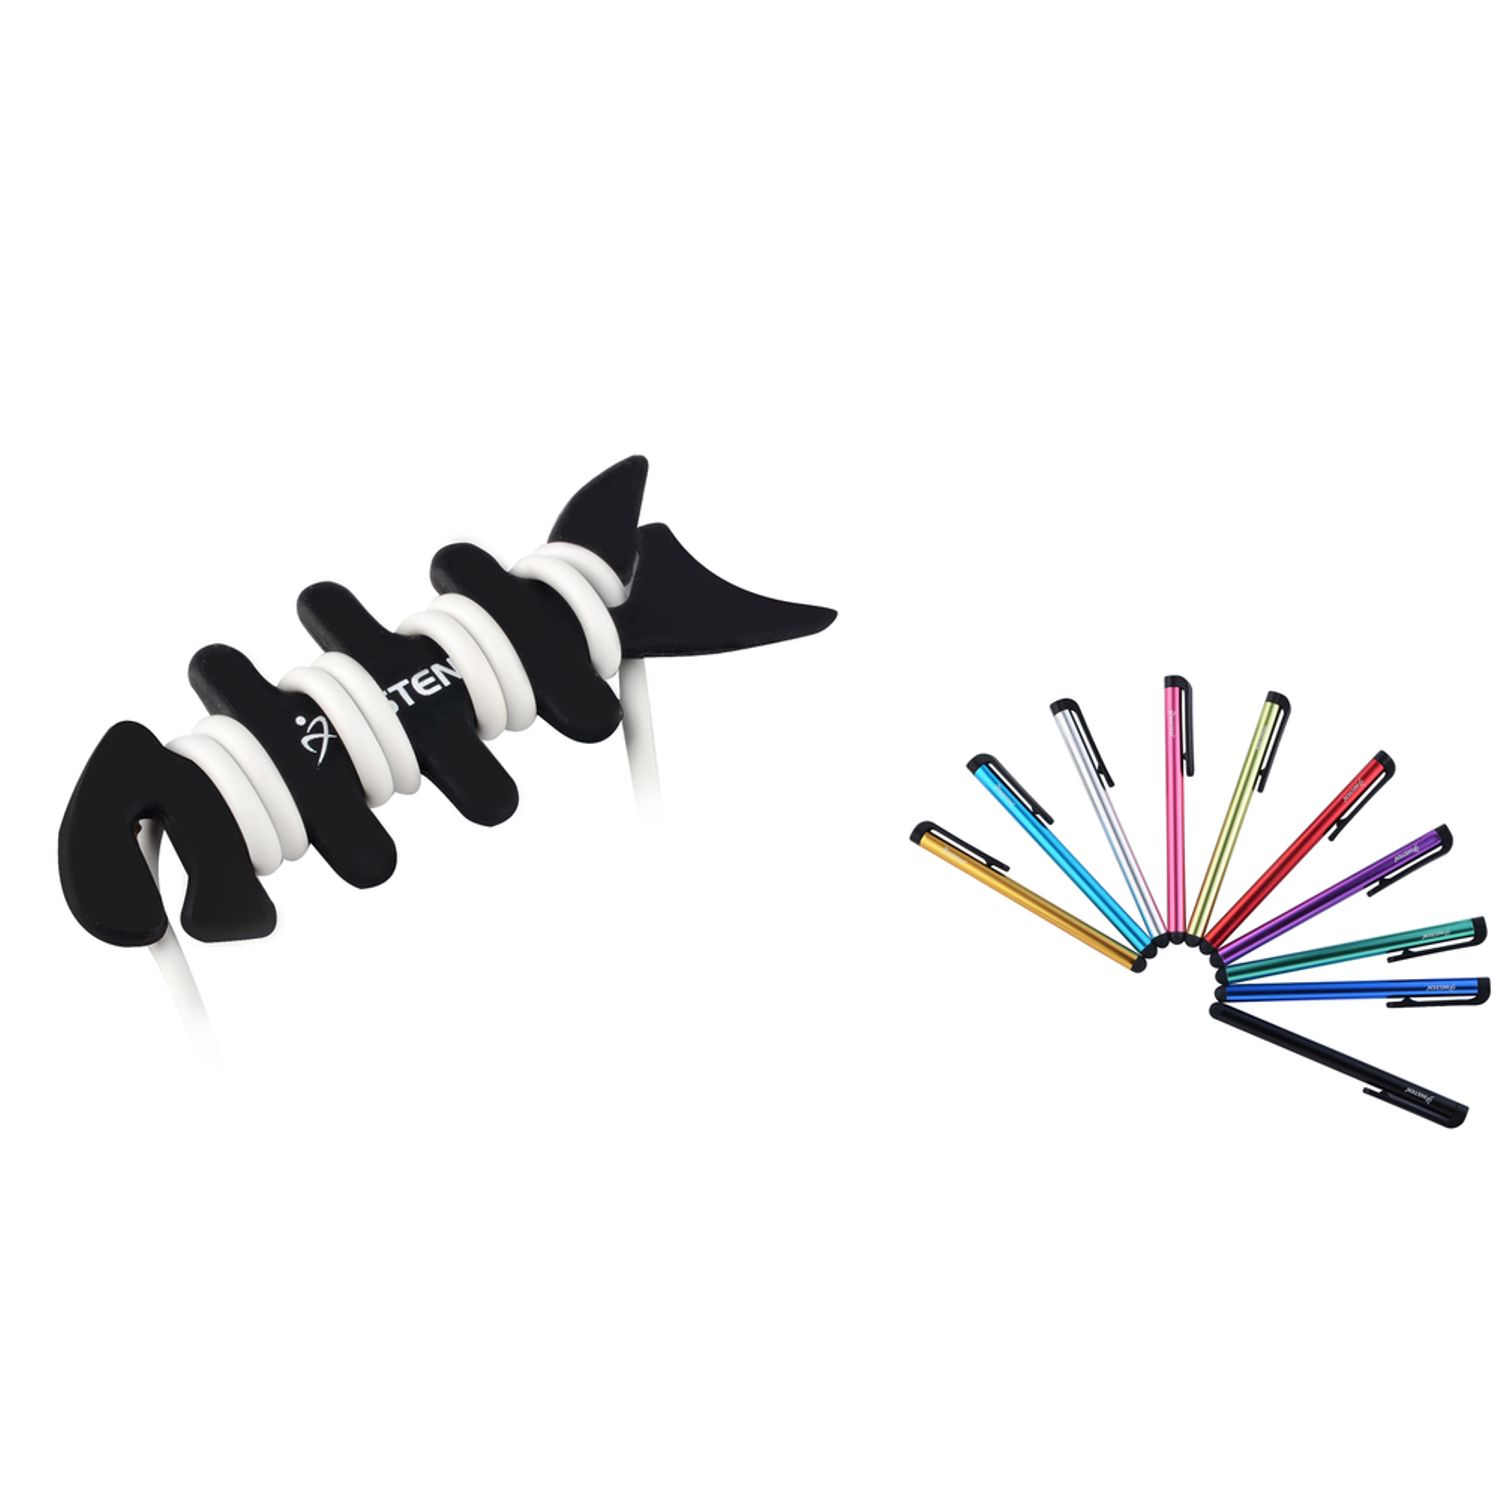 Insten 10pcs Assorted Colorful Stylus Pen + Wrap for Samsung Galaxy Tab Tablet Note 5 4 S5 S6 S7 iPhone 6 6s SE 5s iPad Air Pro Mini 4 3 2 1